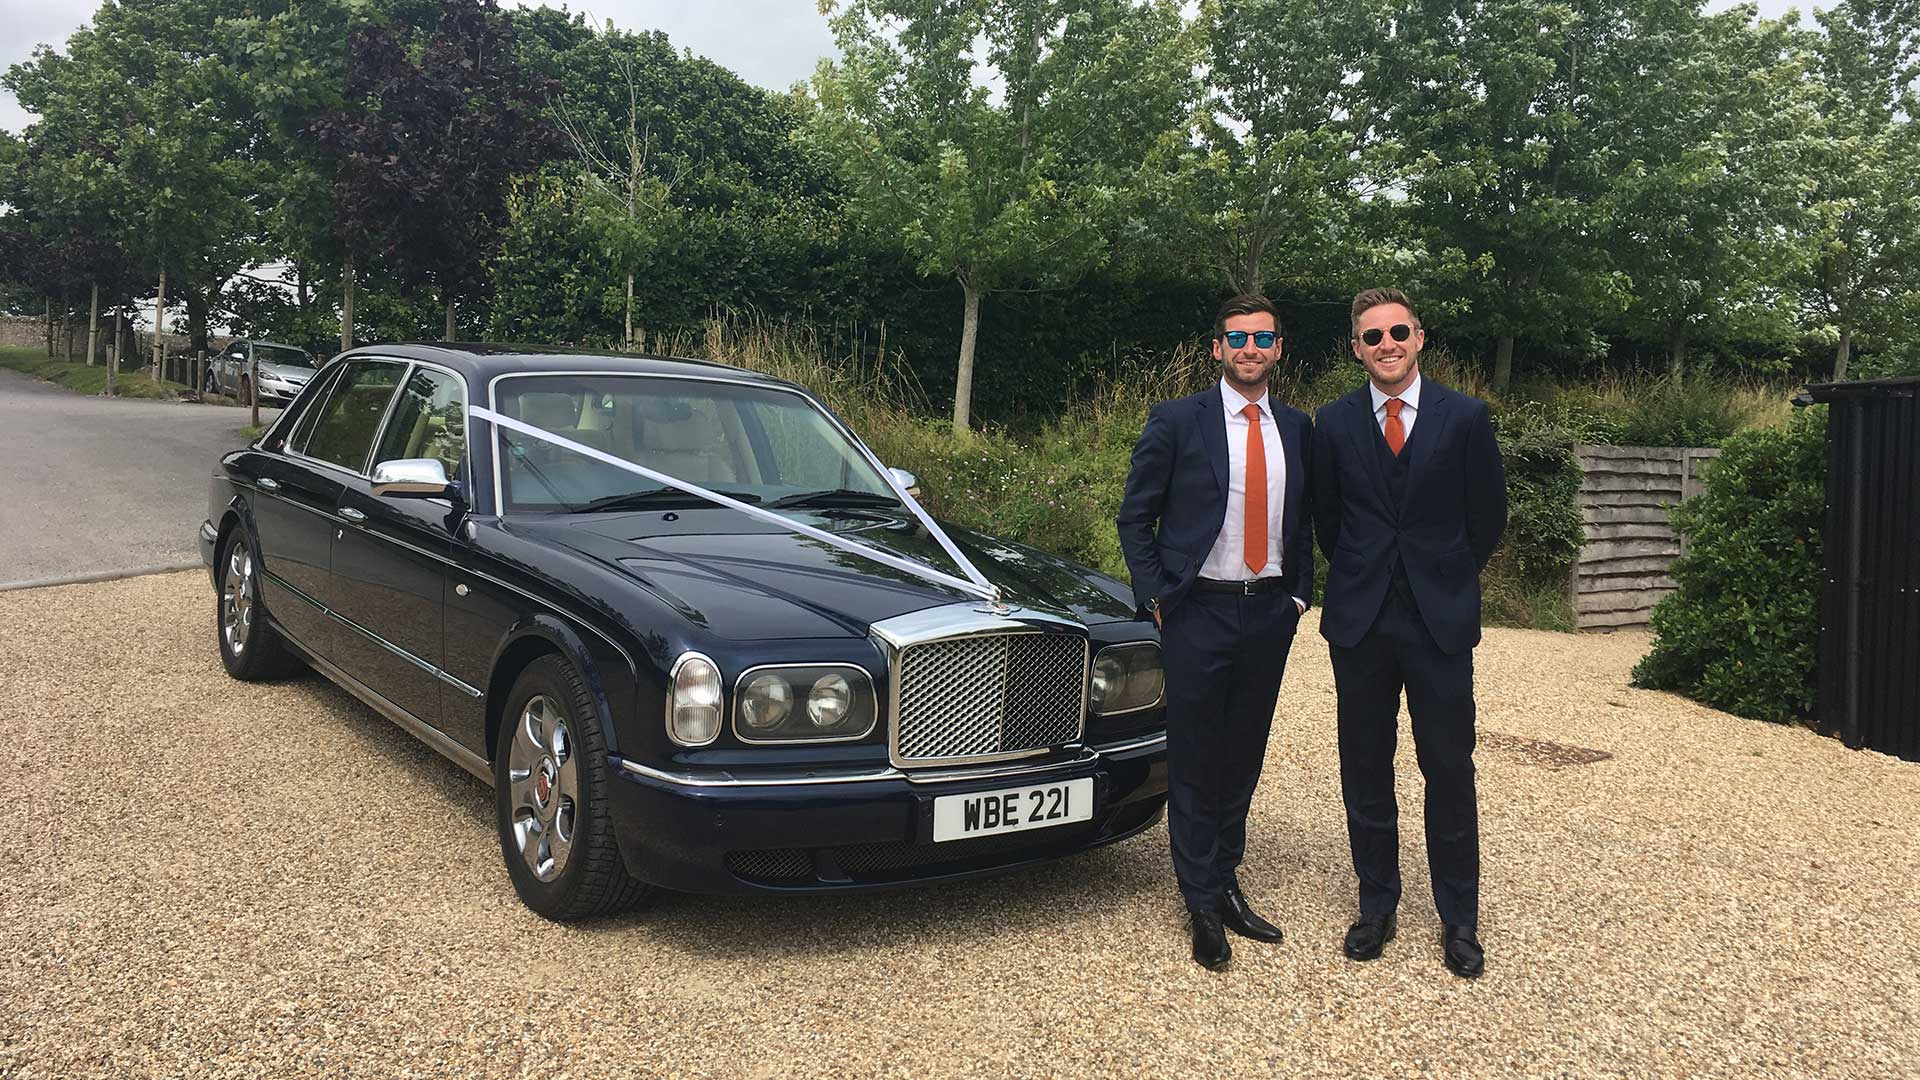 Olly and groomsman with the Bentley Arnage in Blue